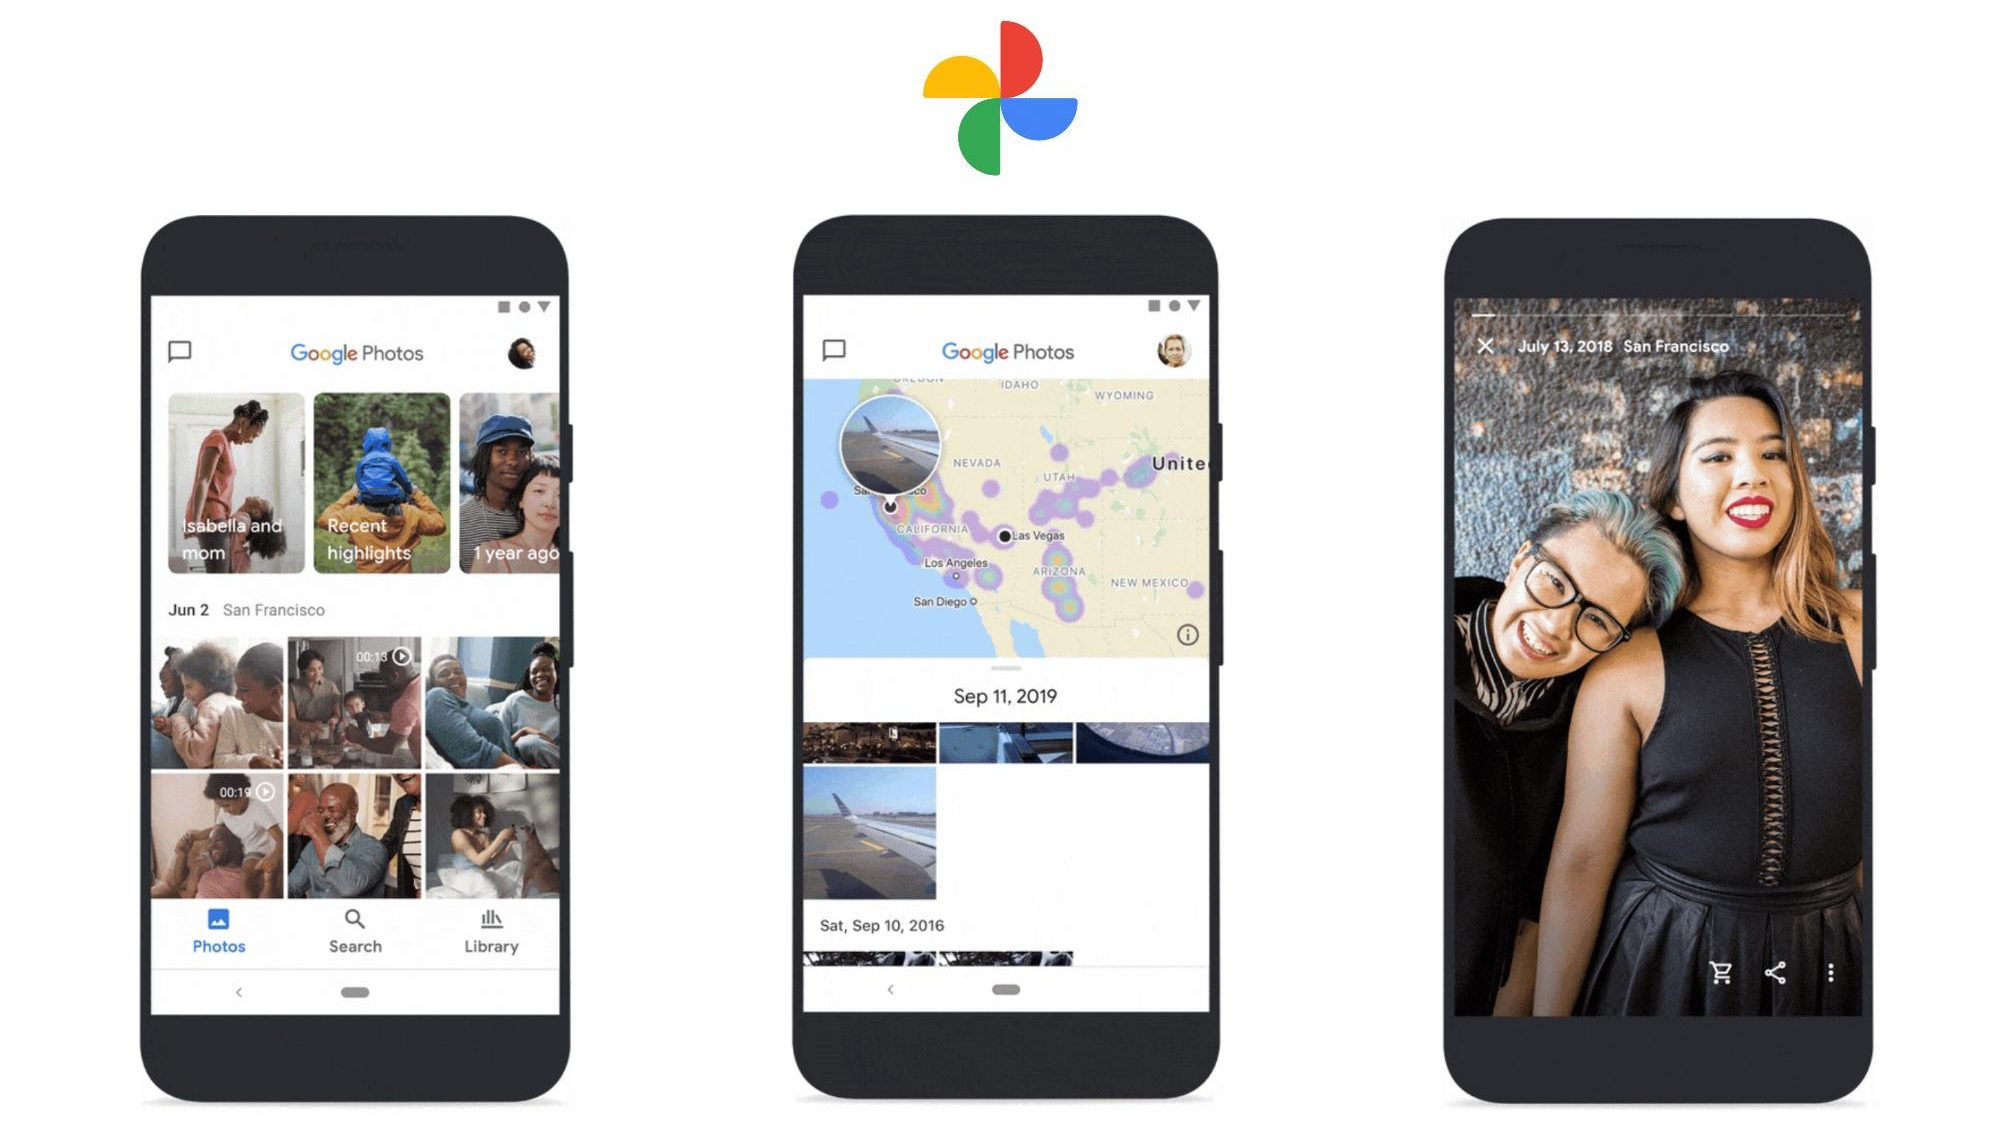 A couple of reasons why you should explore the new Google Photos app